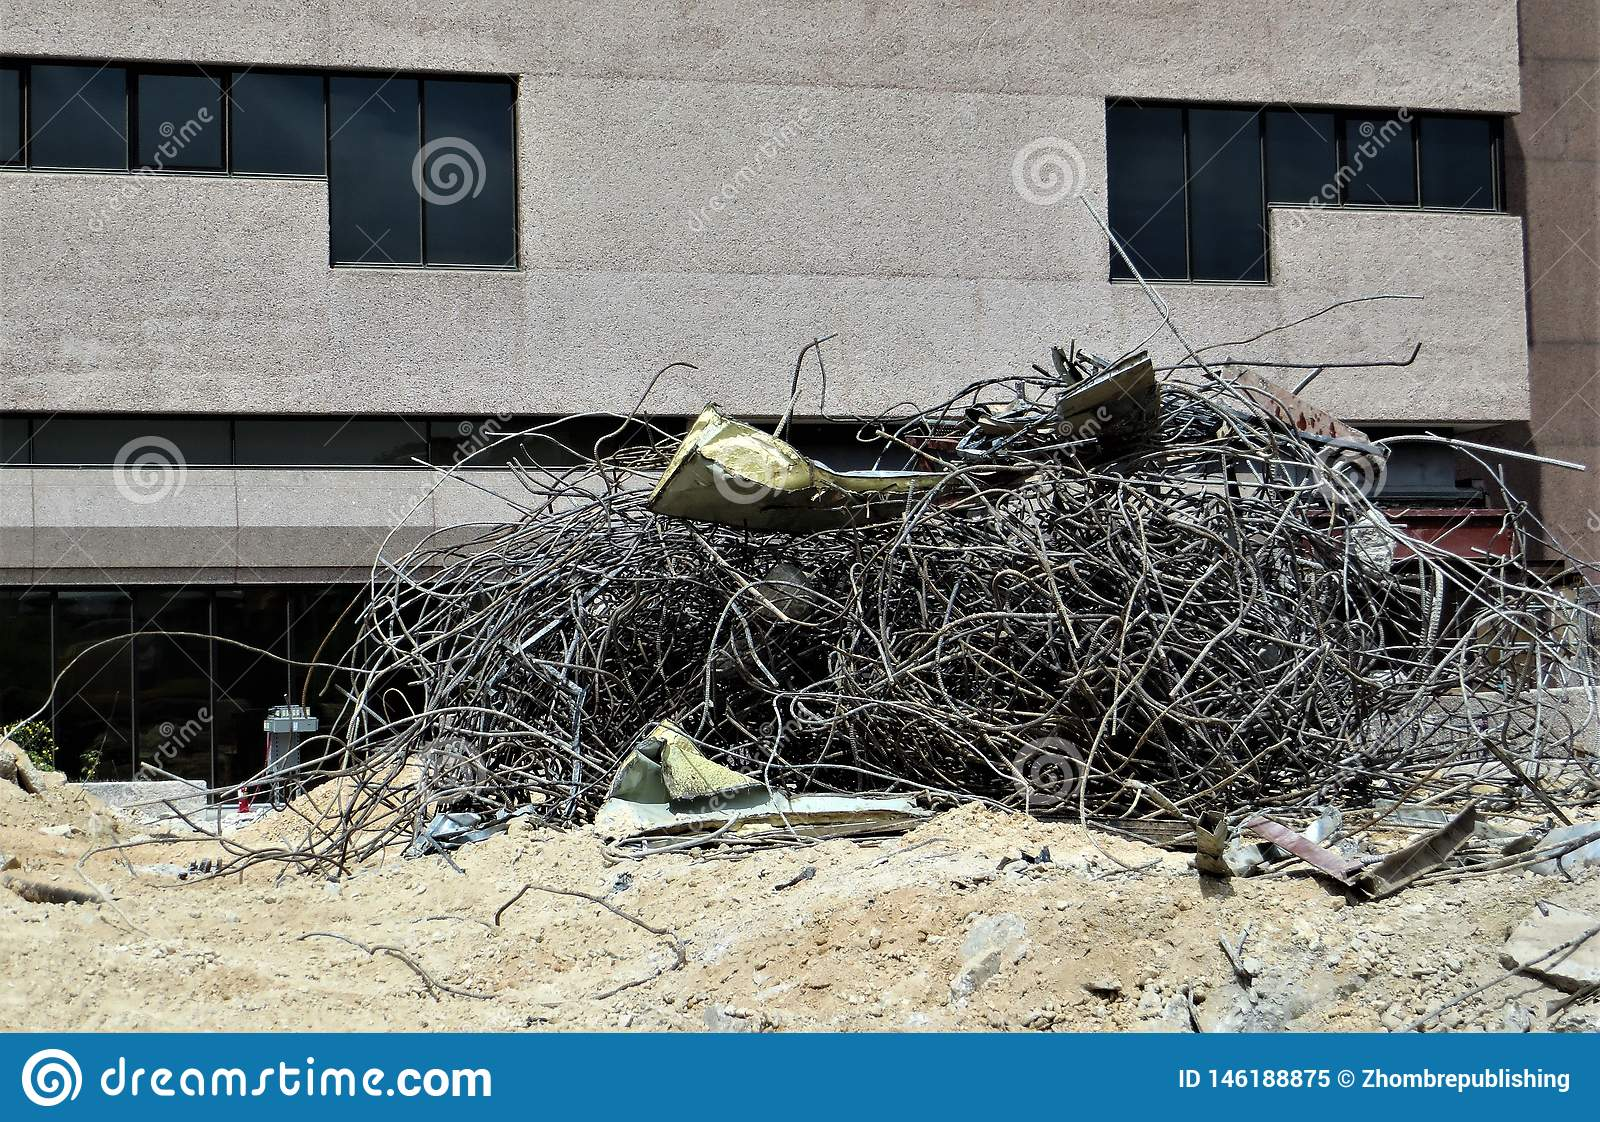 Tangled Wiring At Demolition Site Stock Image - Image of ... on